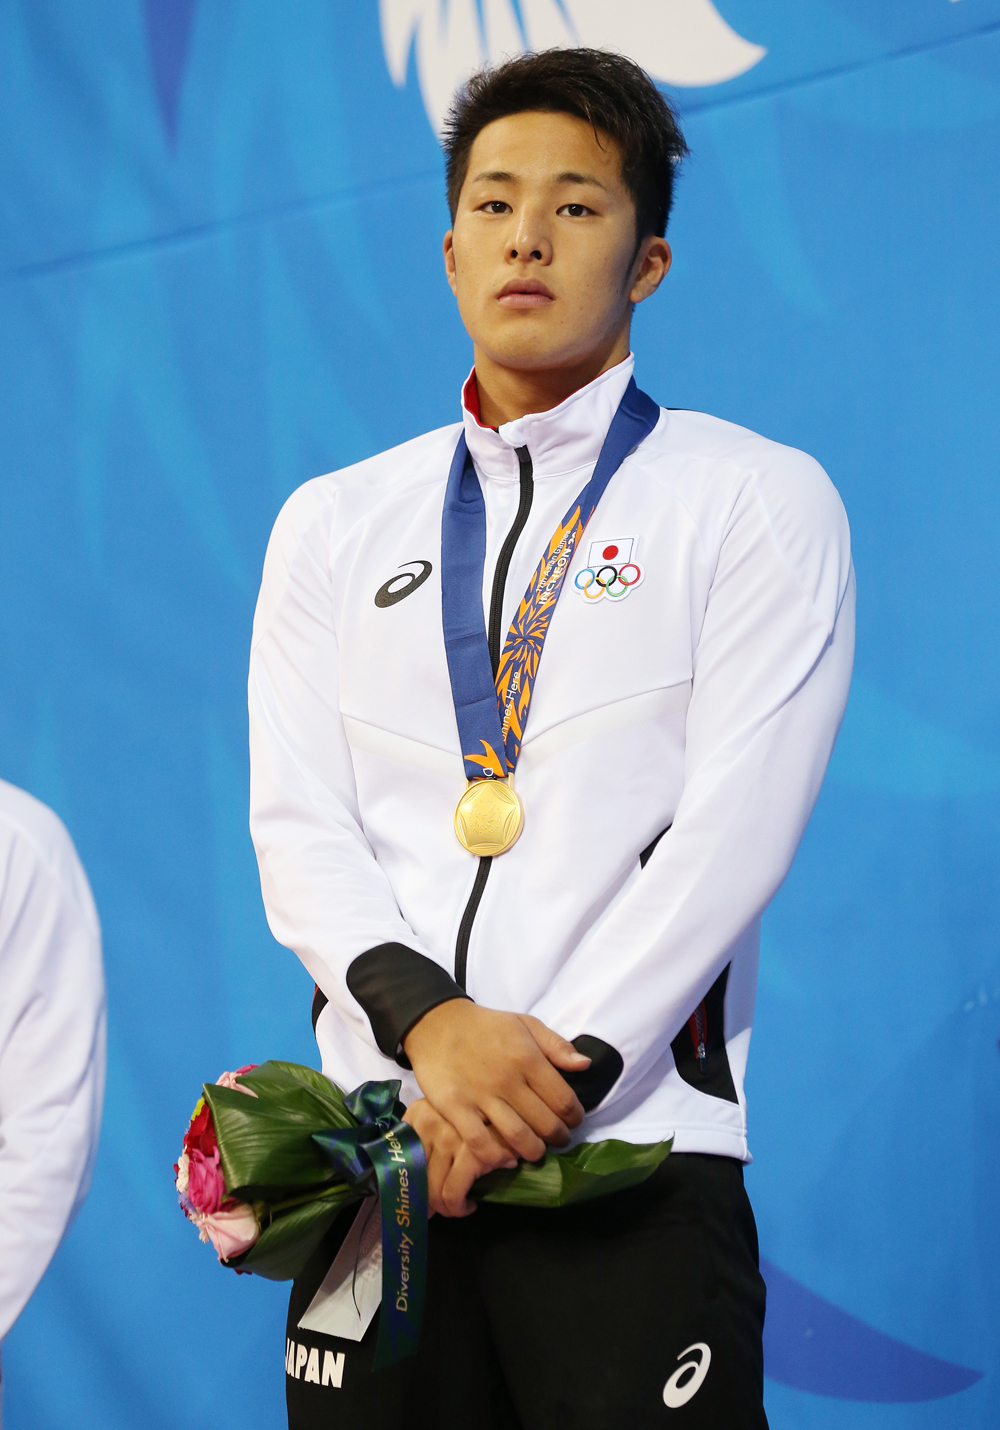 Japan's Daiya Seto stands on the podium after winning the men's 200-meter butterfly swimming final at the 17th Asian Games in Incheon, South Korea, Sunday, Sept. 21, 2014 .(AP Photo/Rob Griffith)